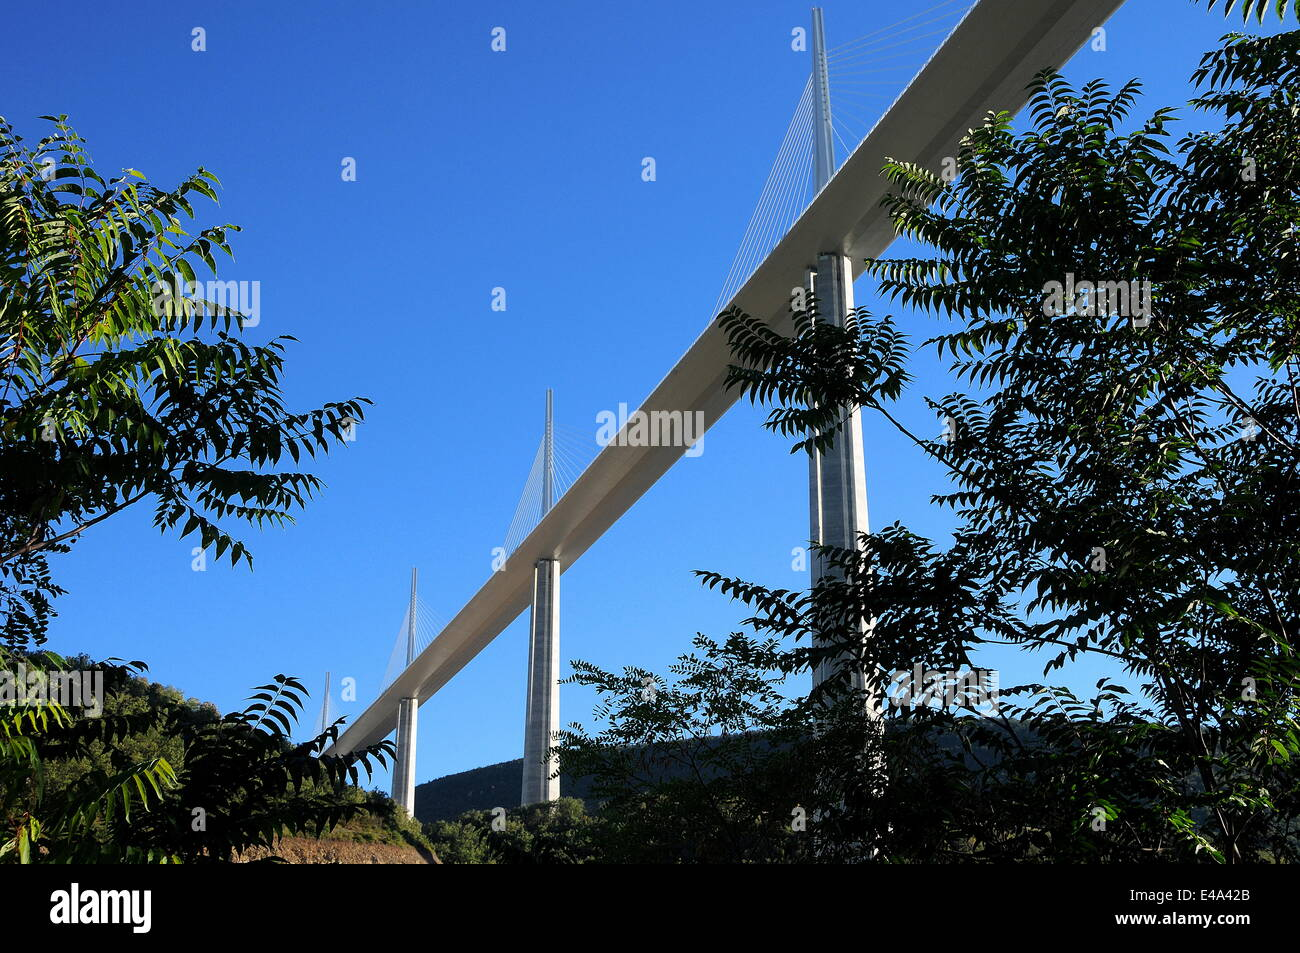 Millau Viaduct in southern France, Aveyron, France, Europe - Stock Image